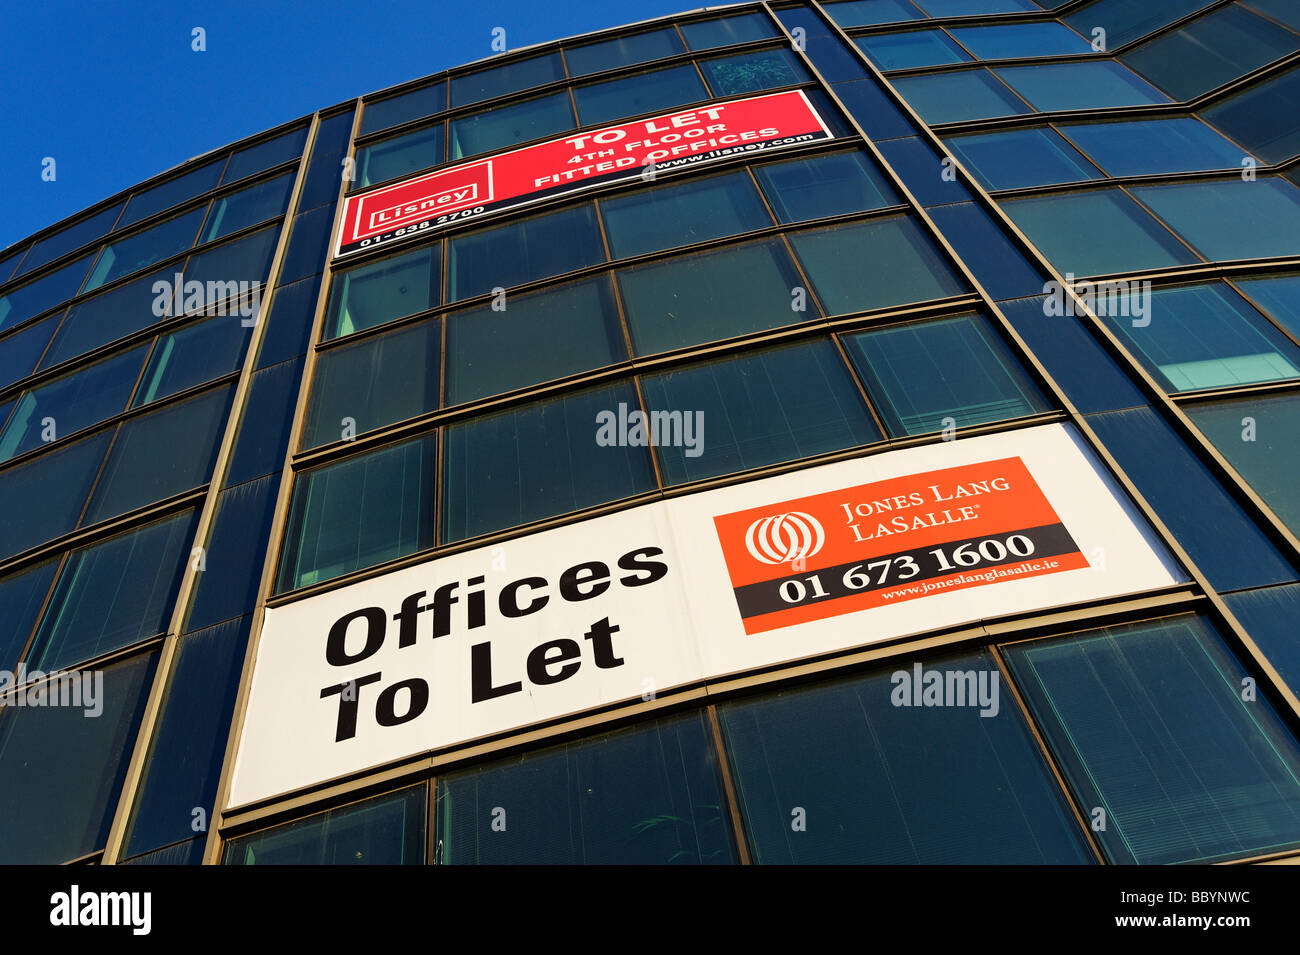 Estate agents To Let signs on business premises in central Dublin Republic of Ireland - Stock Image